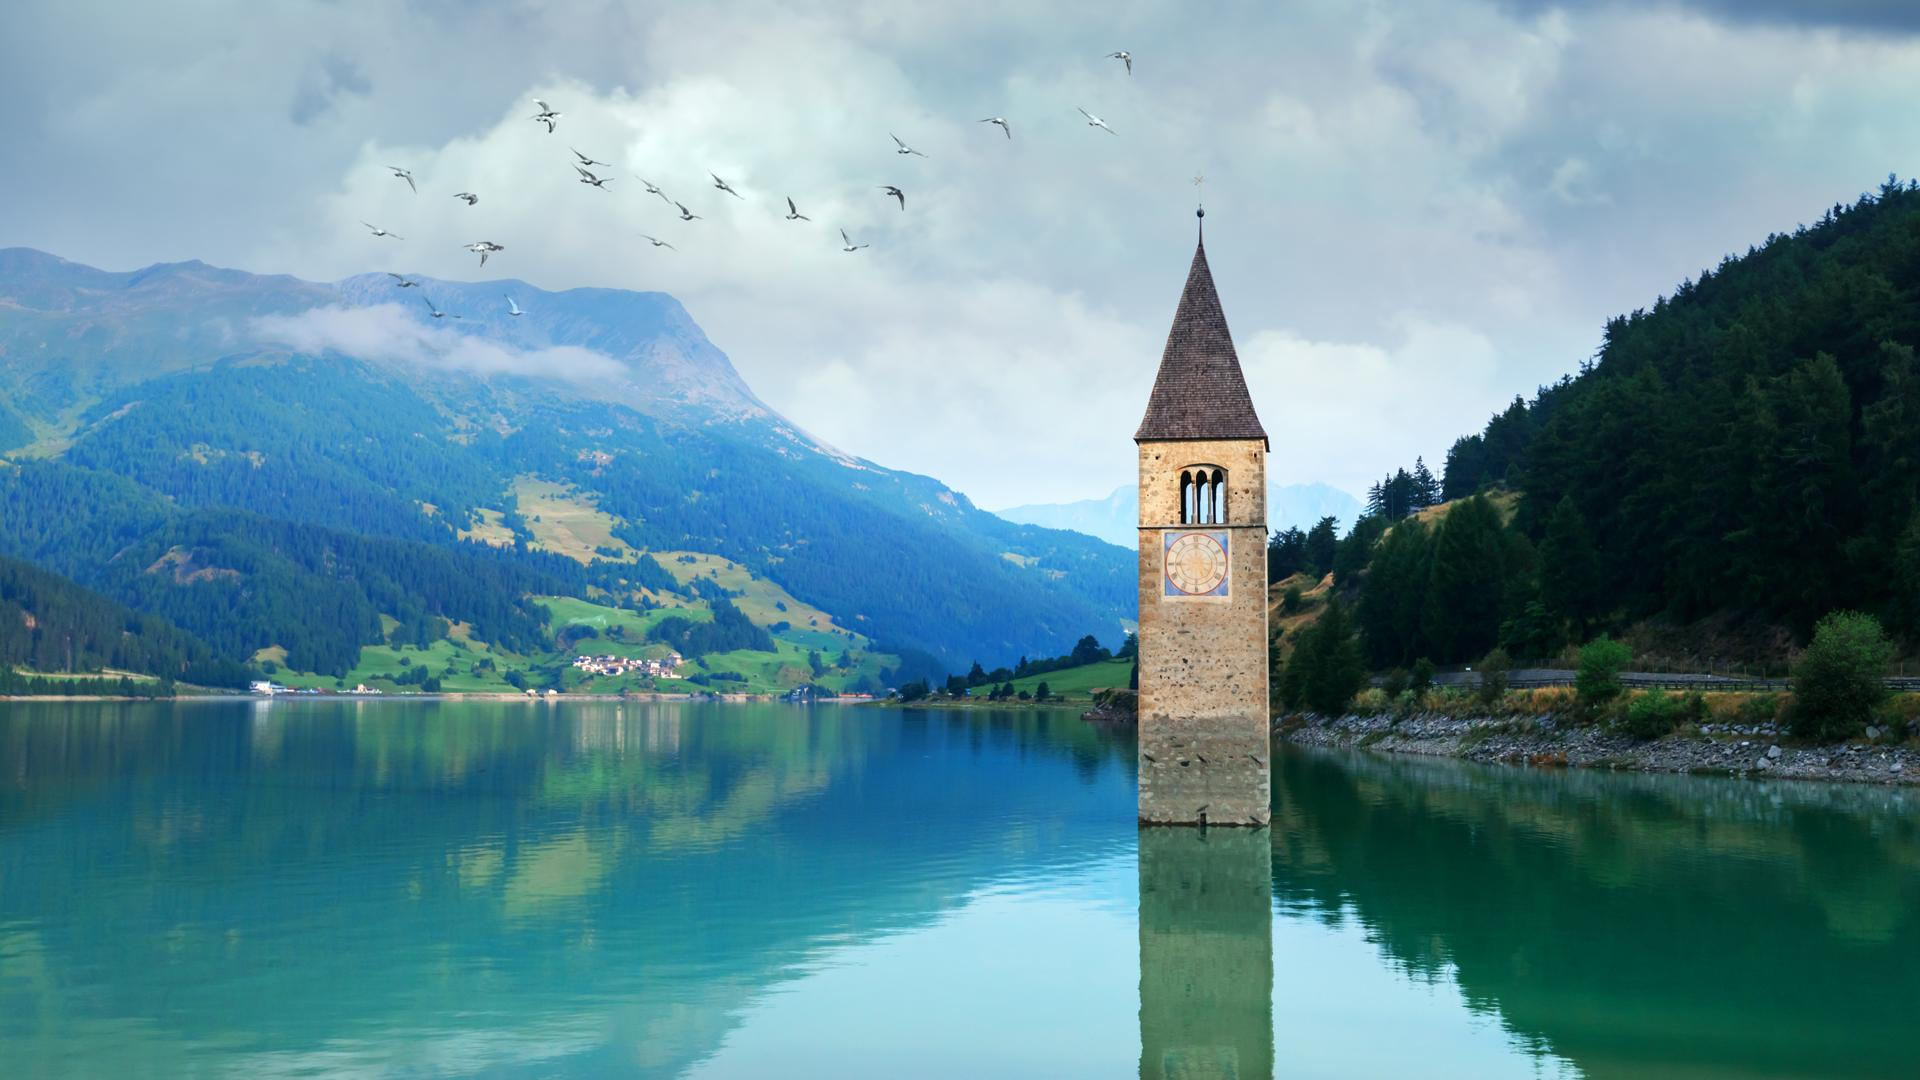 Lake Reschen Bell Tower in South Tyrol, Italy